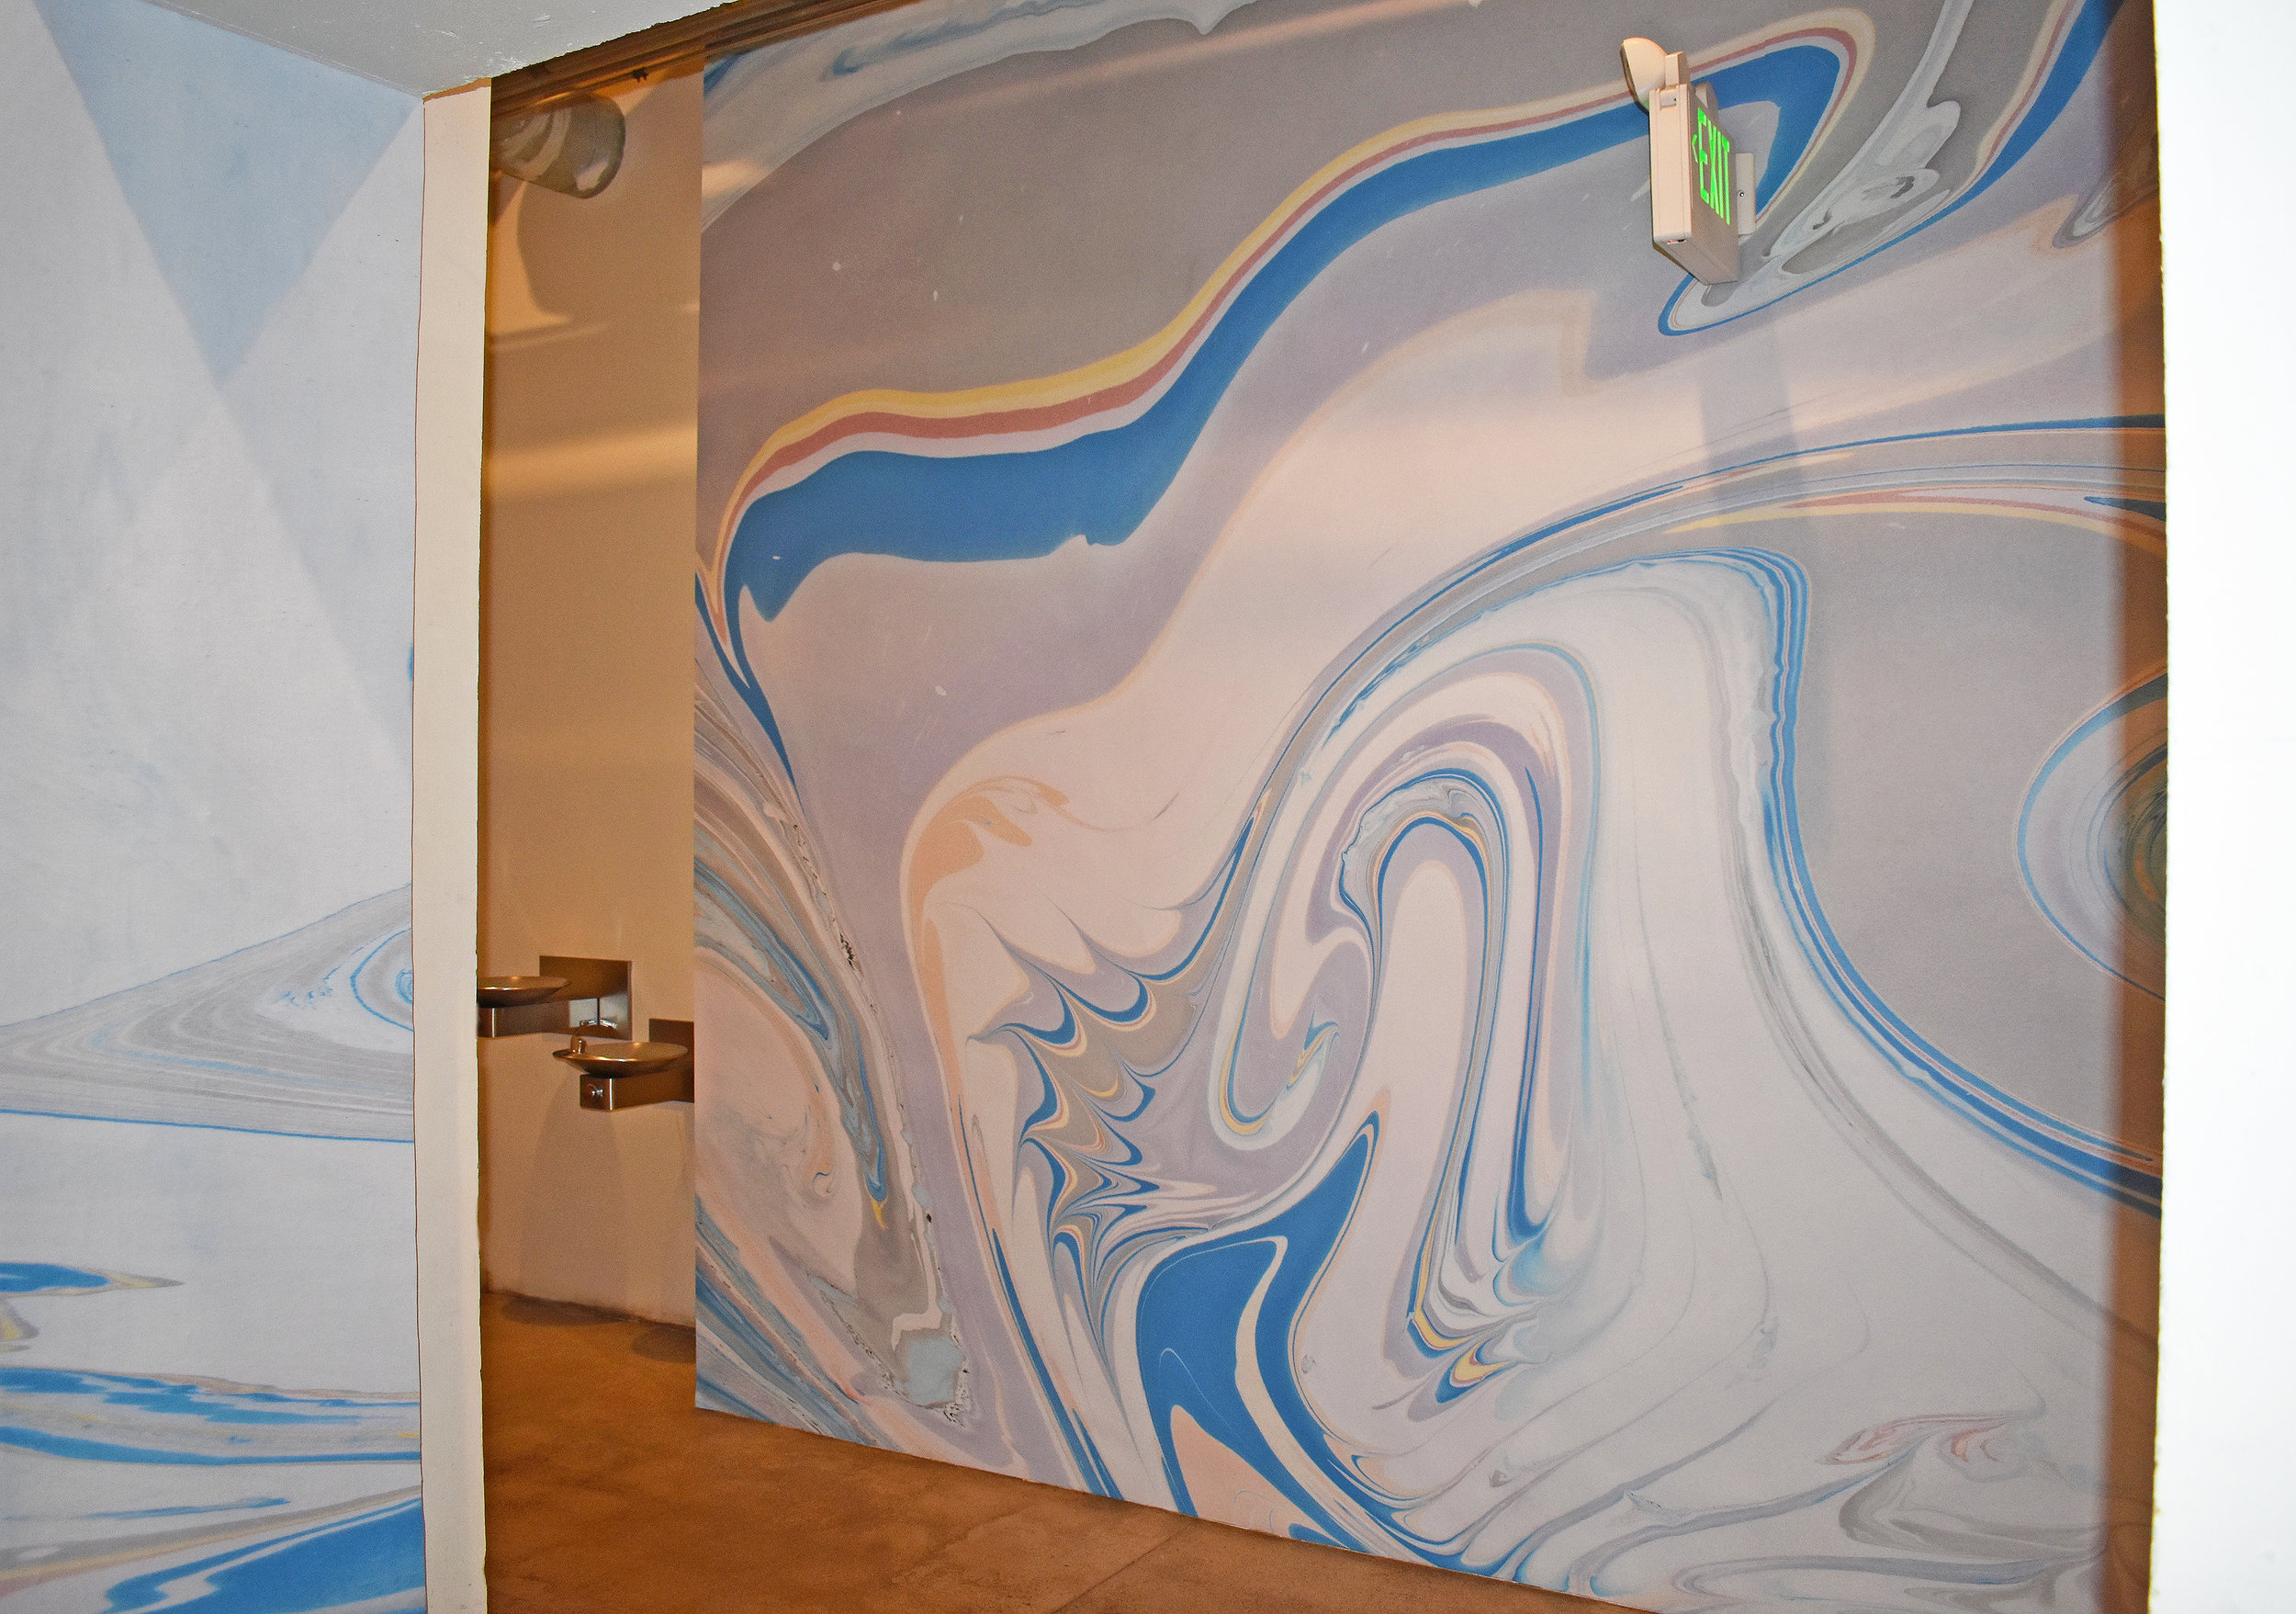 Marbled Mural Installation, Redcar Properties, Highland Park, CA. 18.5 ft x 13 ft. (2019)